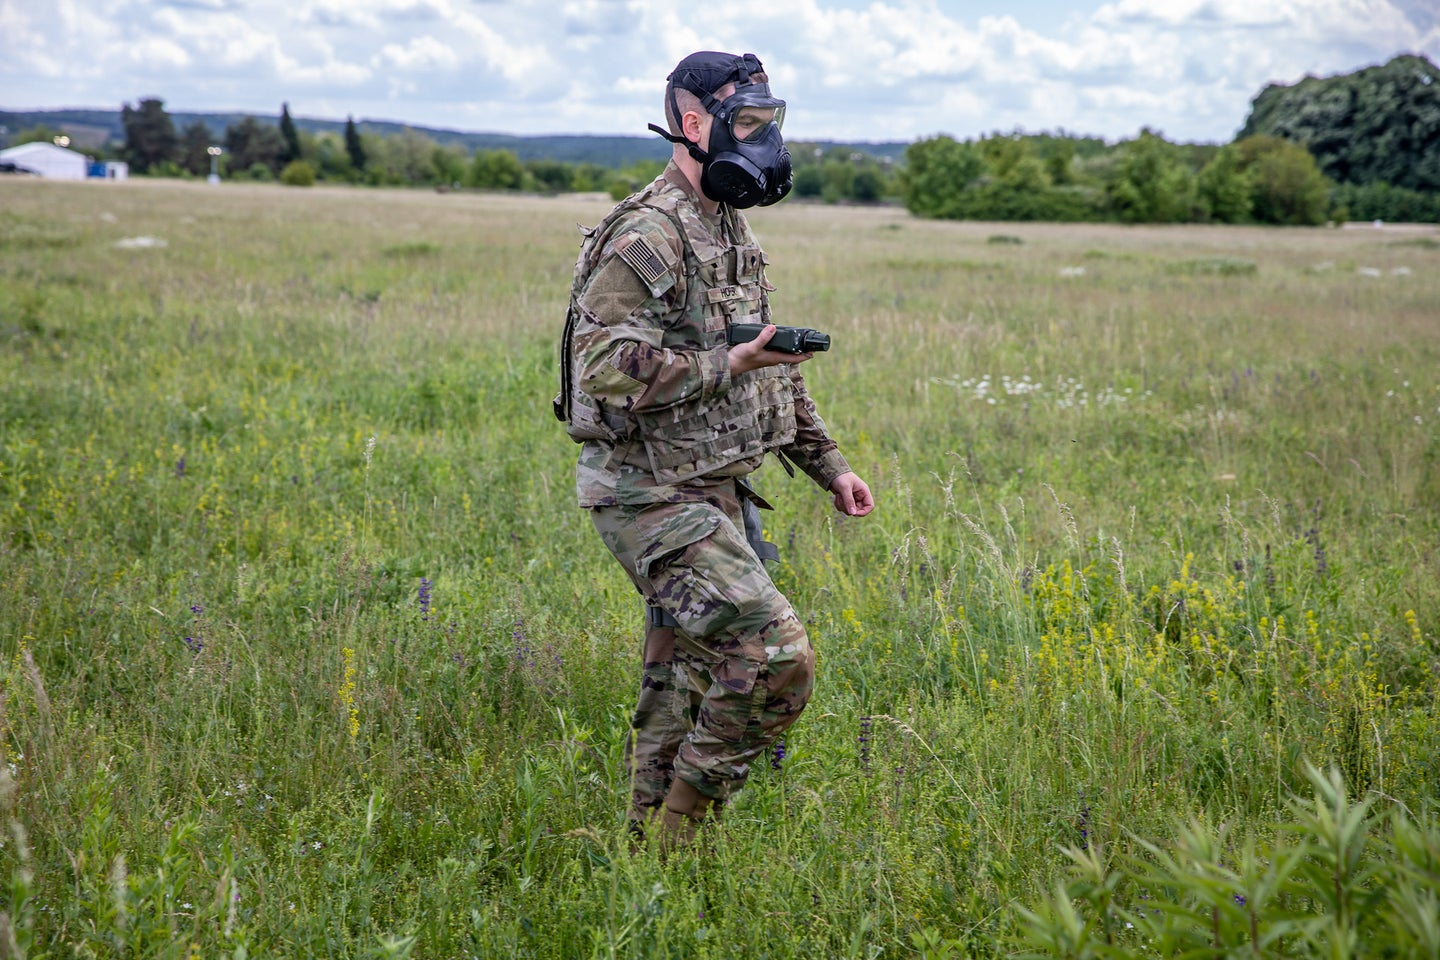 Wearable sensors may one day sniff out chemical weapons for soldiers